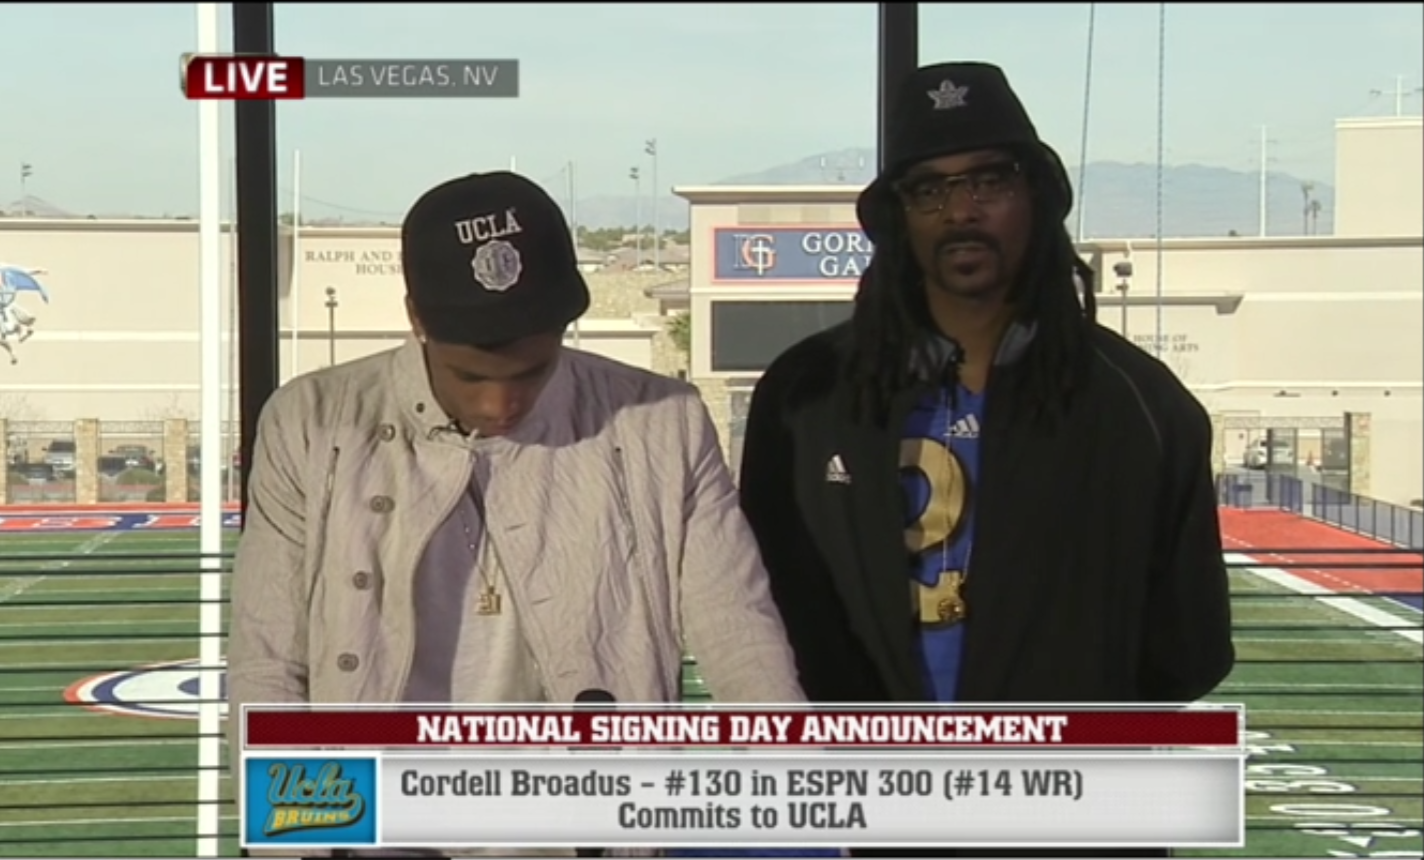 Cordell Broadus' commitment on ESPN was big news for UCLA on Signing Day, but the four-star receiver never showed up to camp.